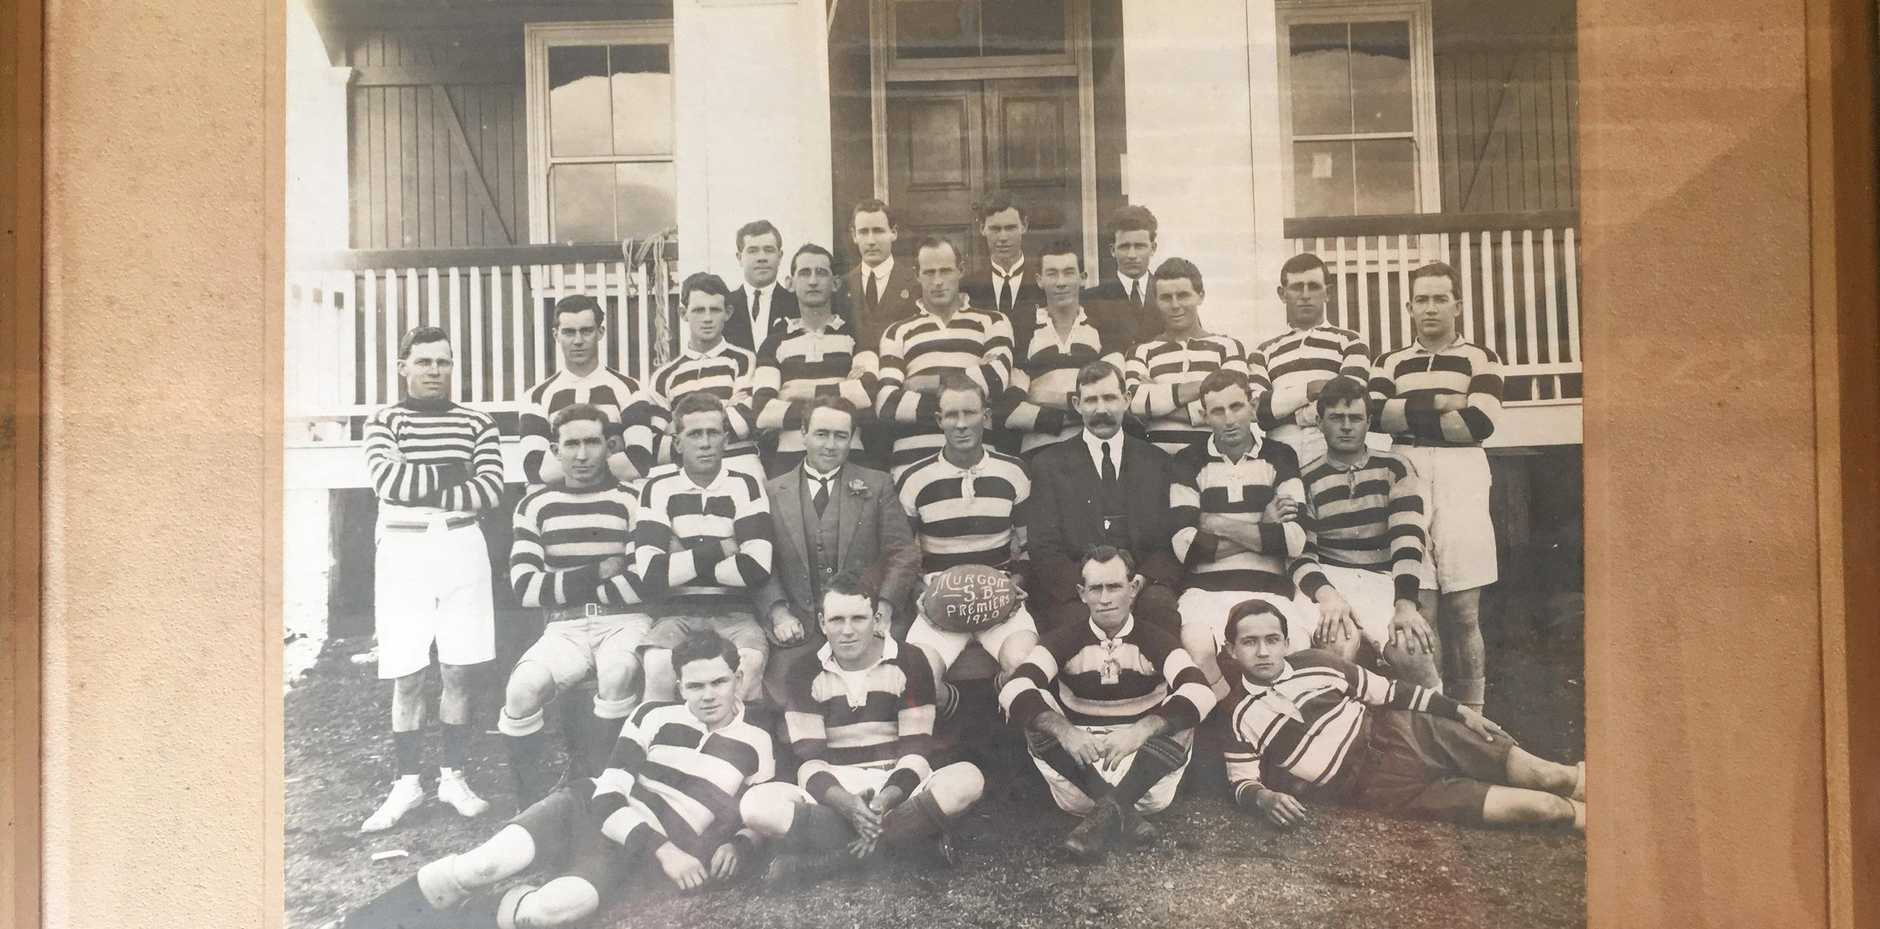 A historic photo donated by the Otto family of the Murgon team who won the first premiership of the South Burnett Rugby League Competition in 1920.